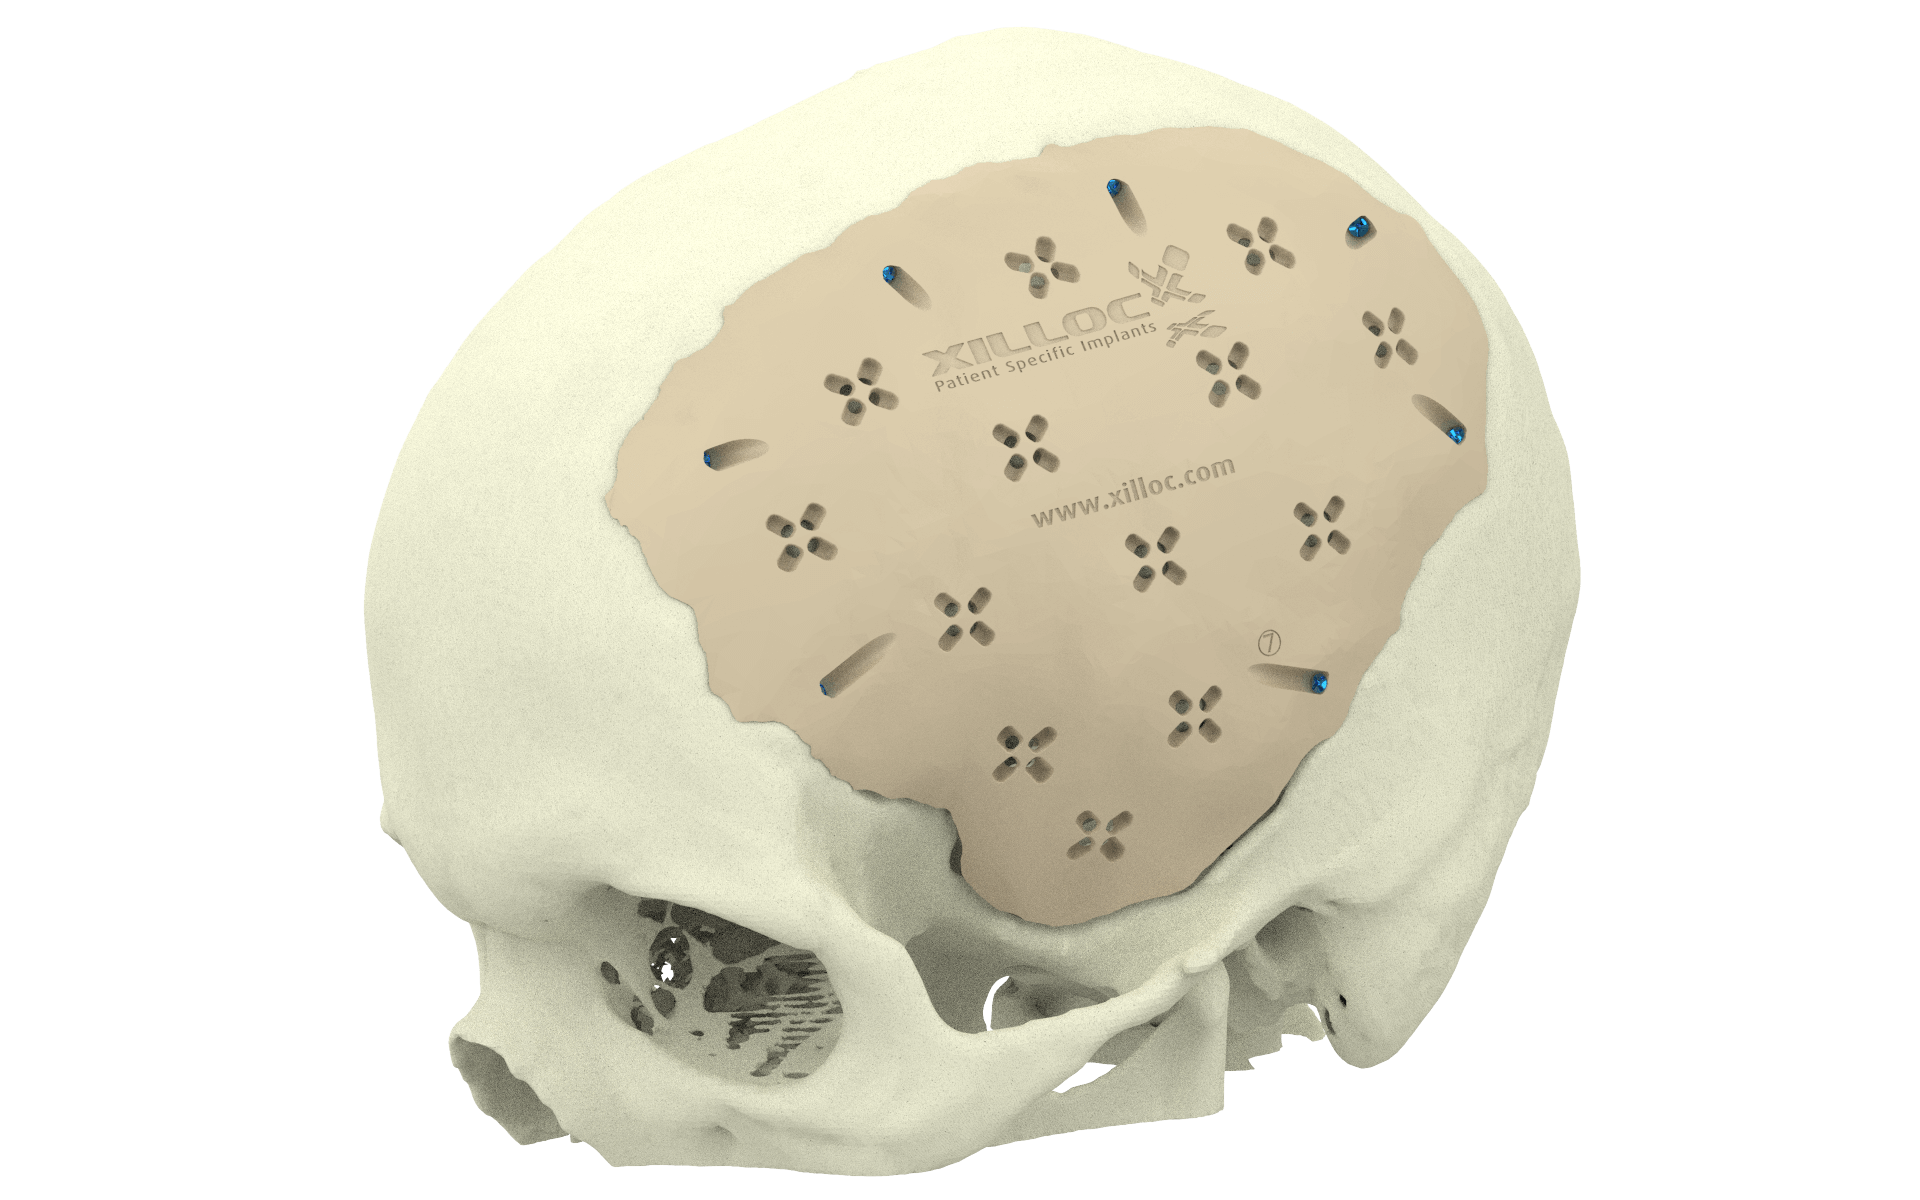 Xilloc Medical B.V. – Cranial Implant Patient Specific Implant